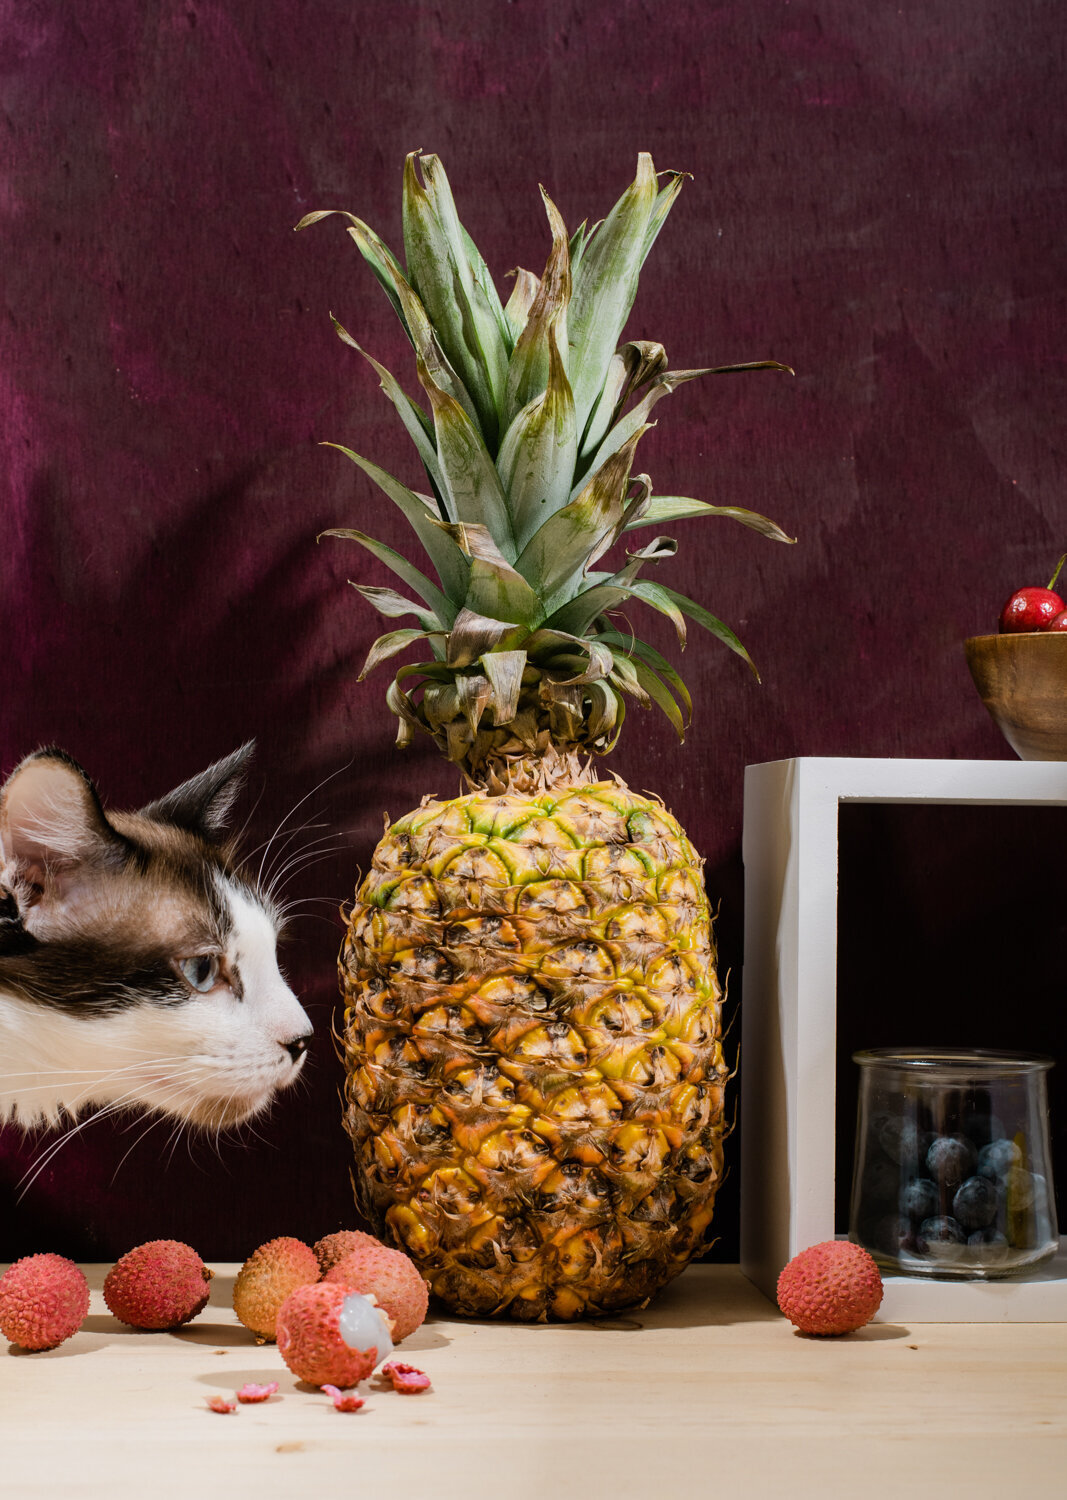 cat still life with pineapples and lychee